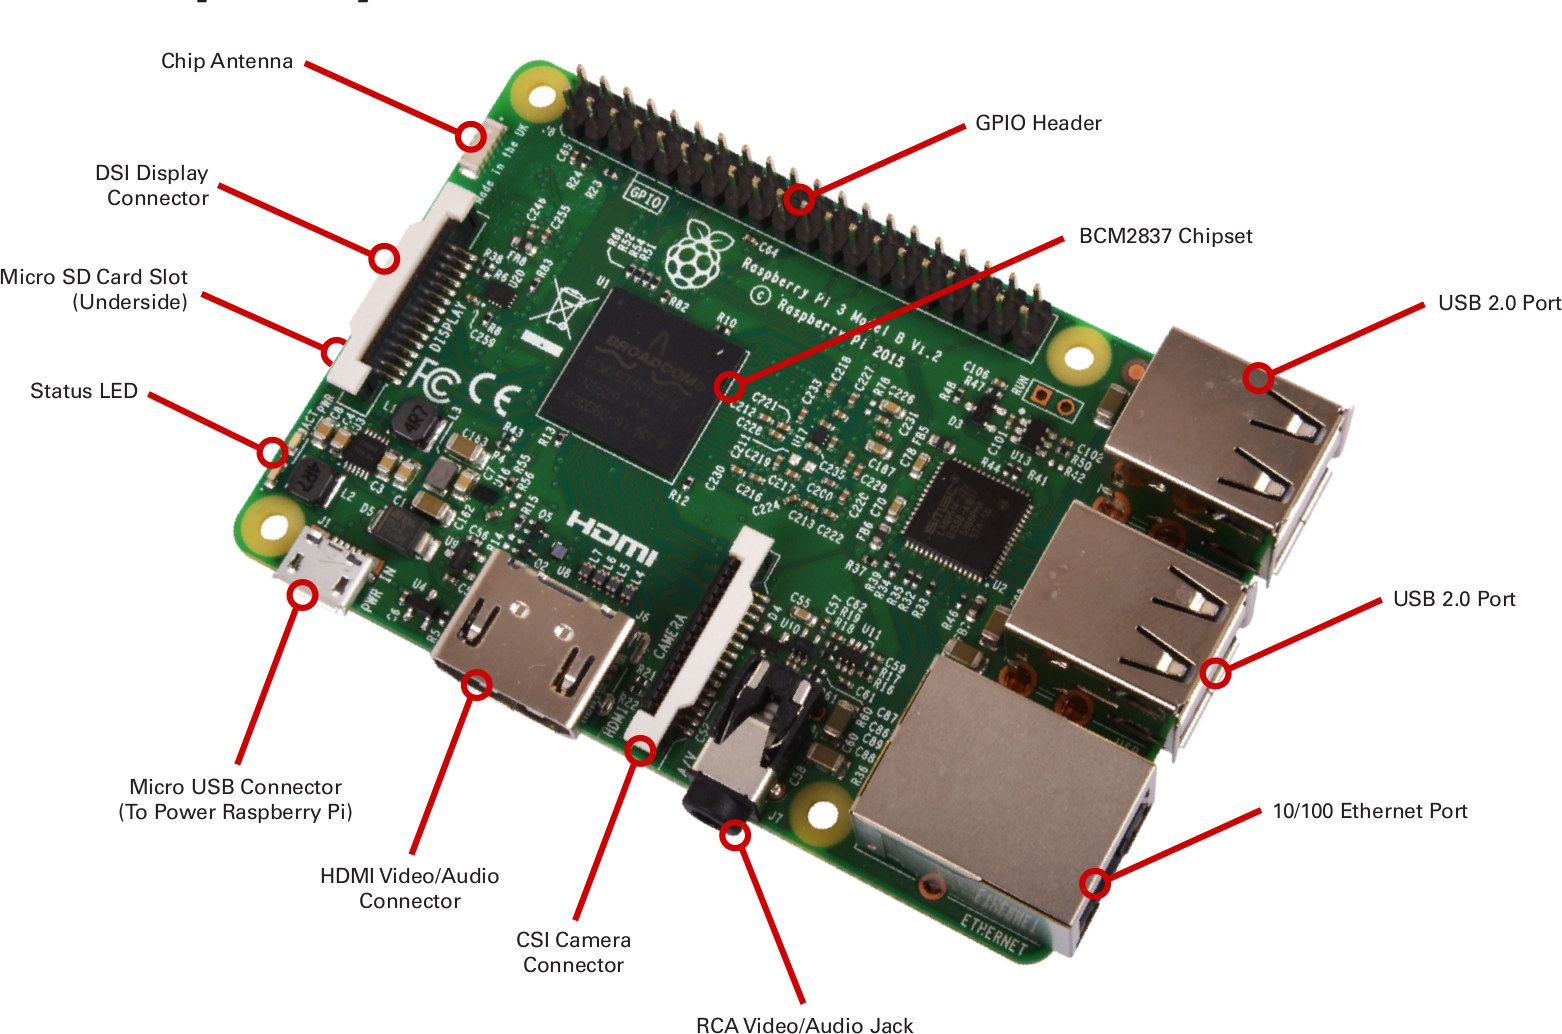 Raspberry Pi 3 Board is Powered by Broadcom BCM2837 Cortex A53